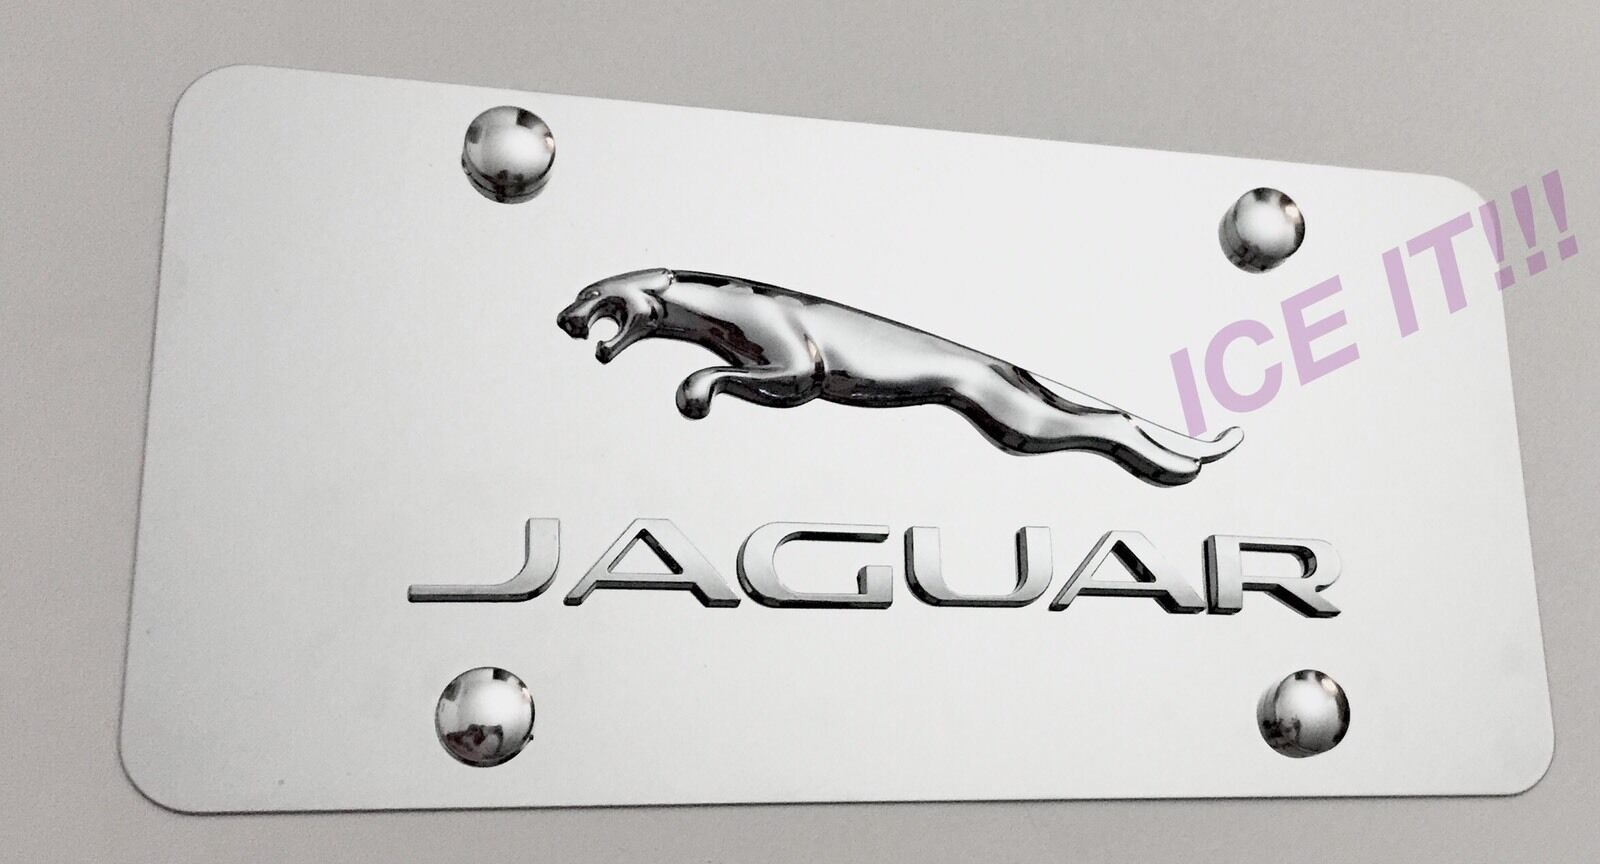 JAGUAR 3D FRONT Mirror Stainless Steel Heavy Duty 1mm License plate ...